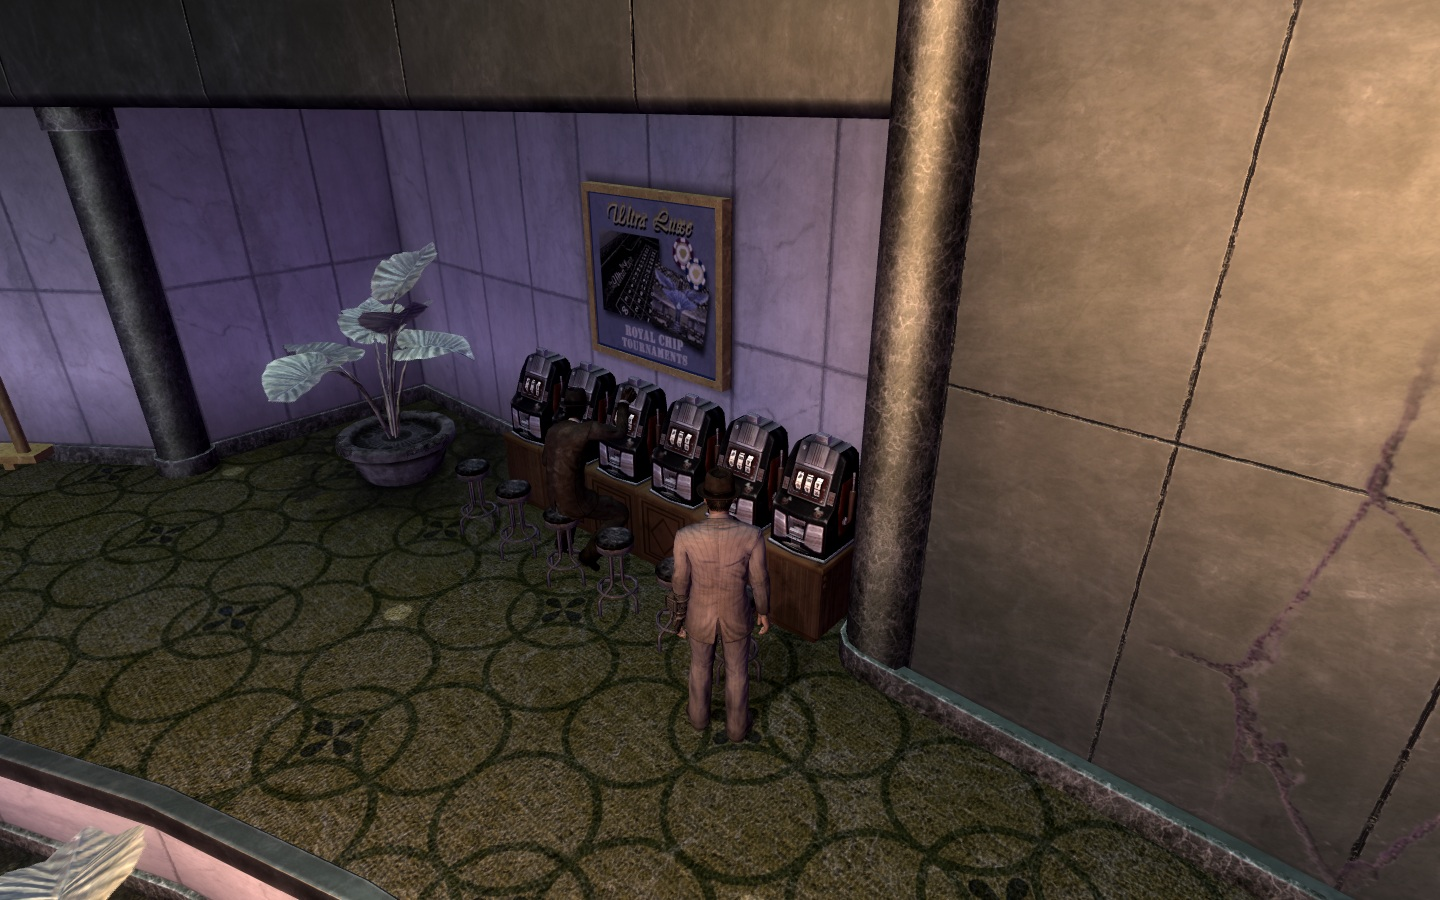 How to cheat the slot machines in fallout new vegas